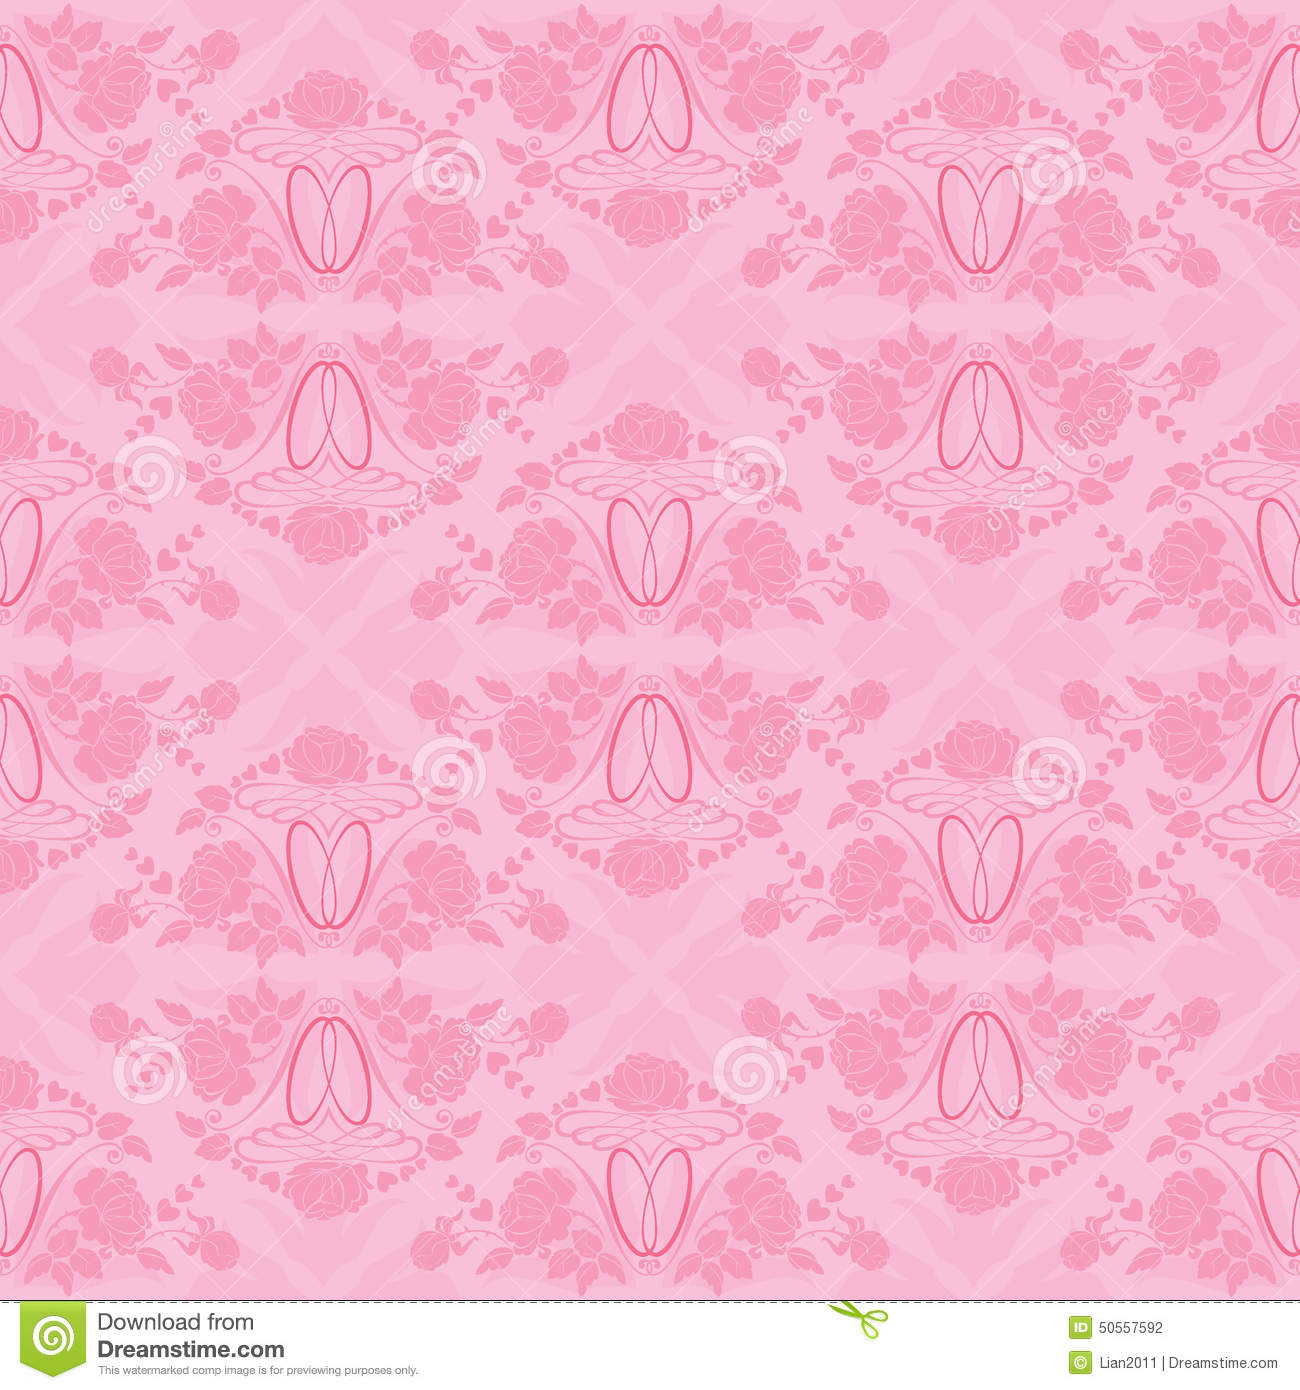 Wedding Seamless Pattern - Floral Ornament With Wedding Rings Stock ...